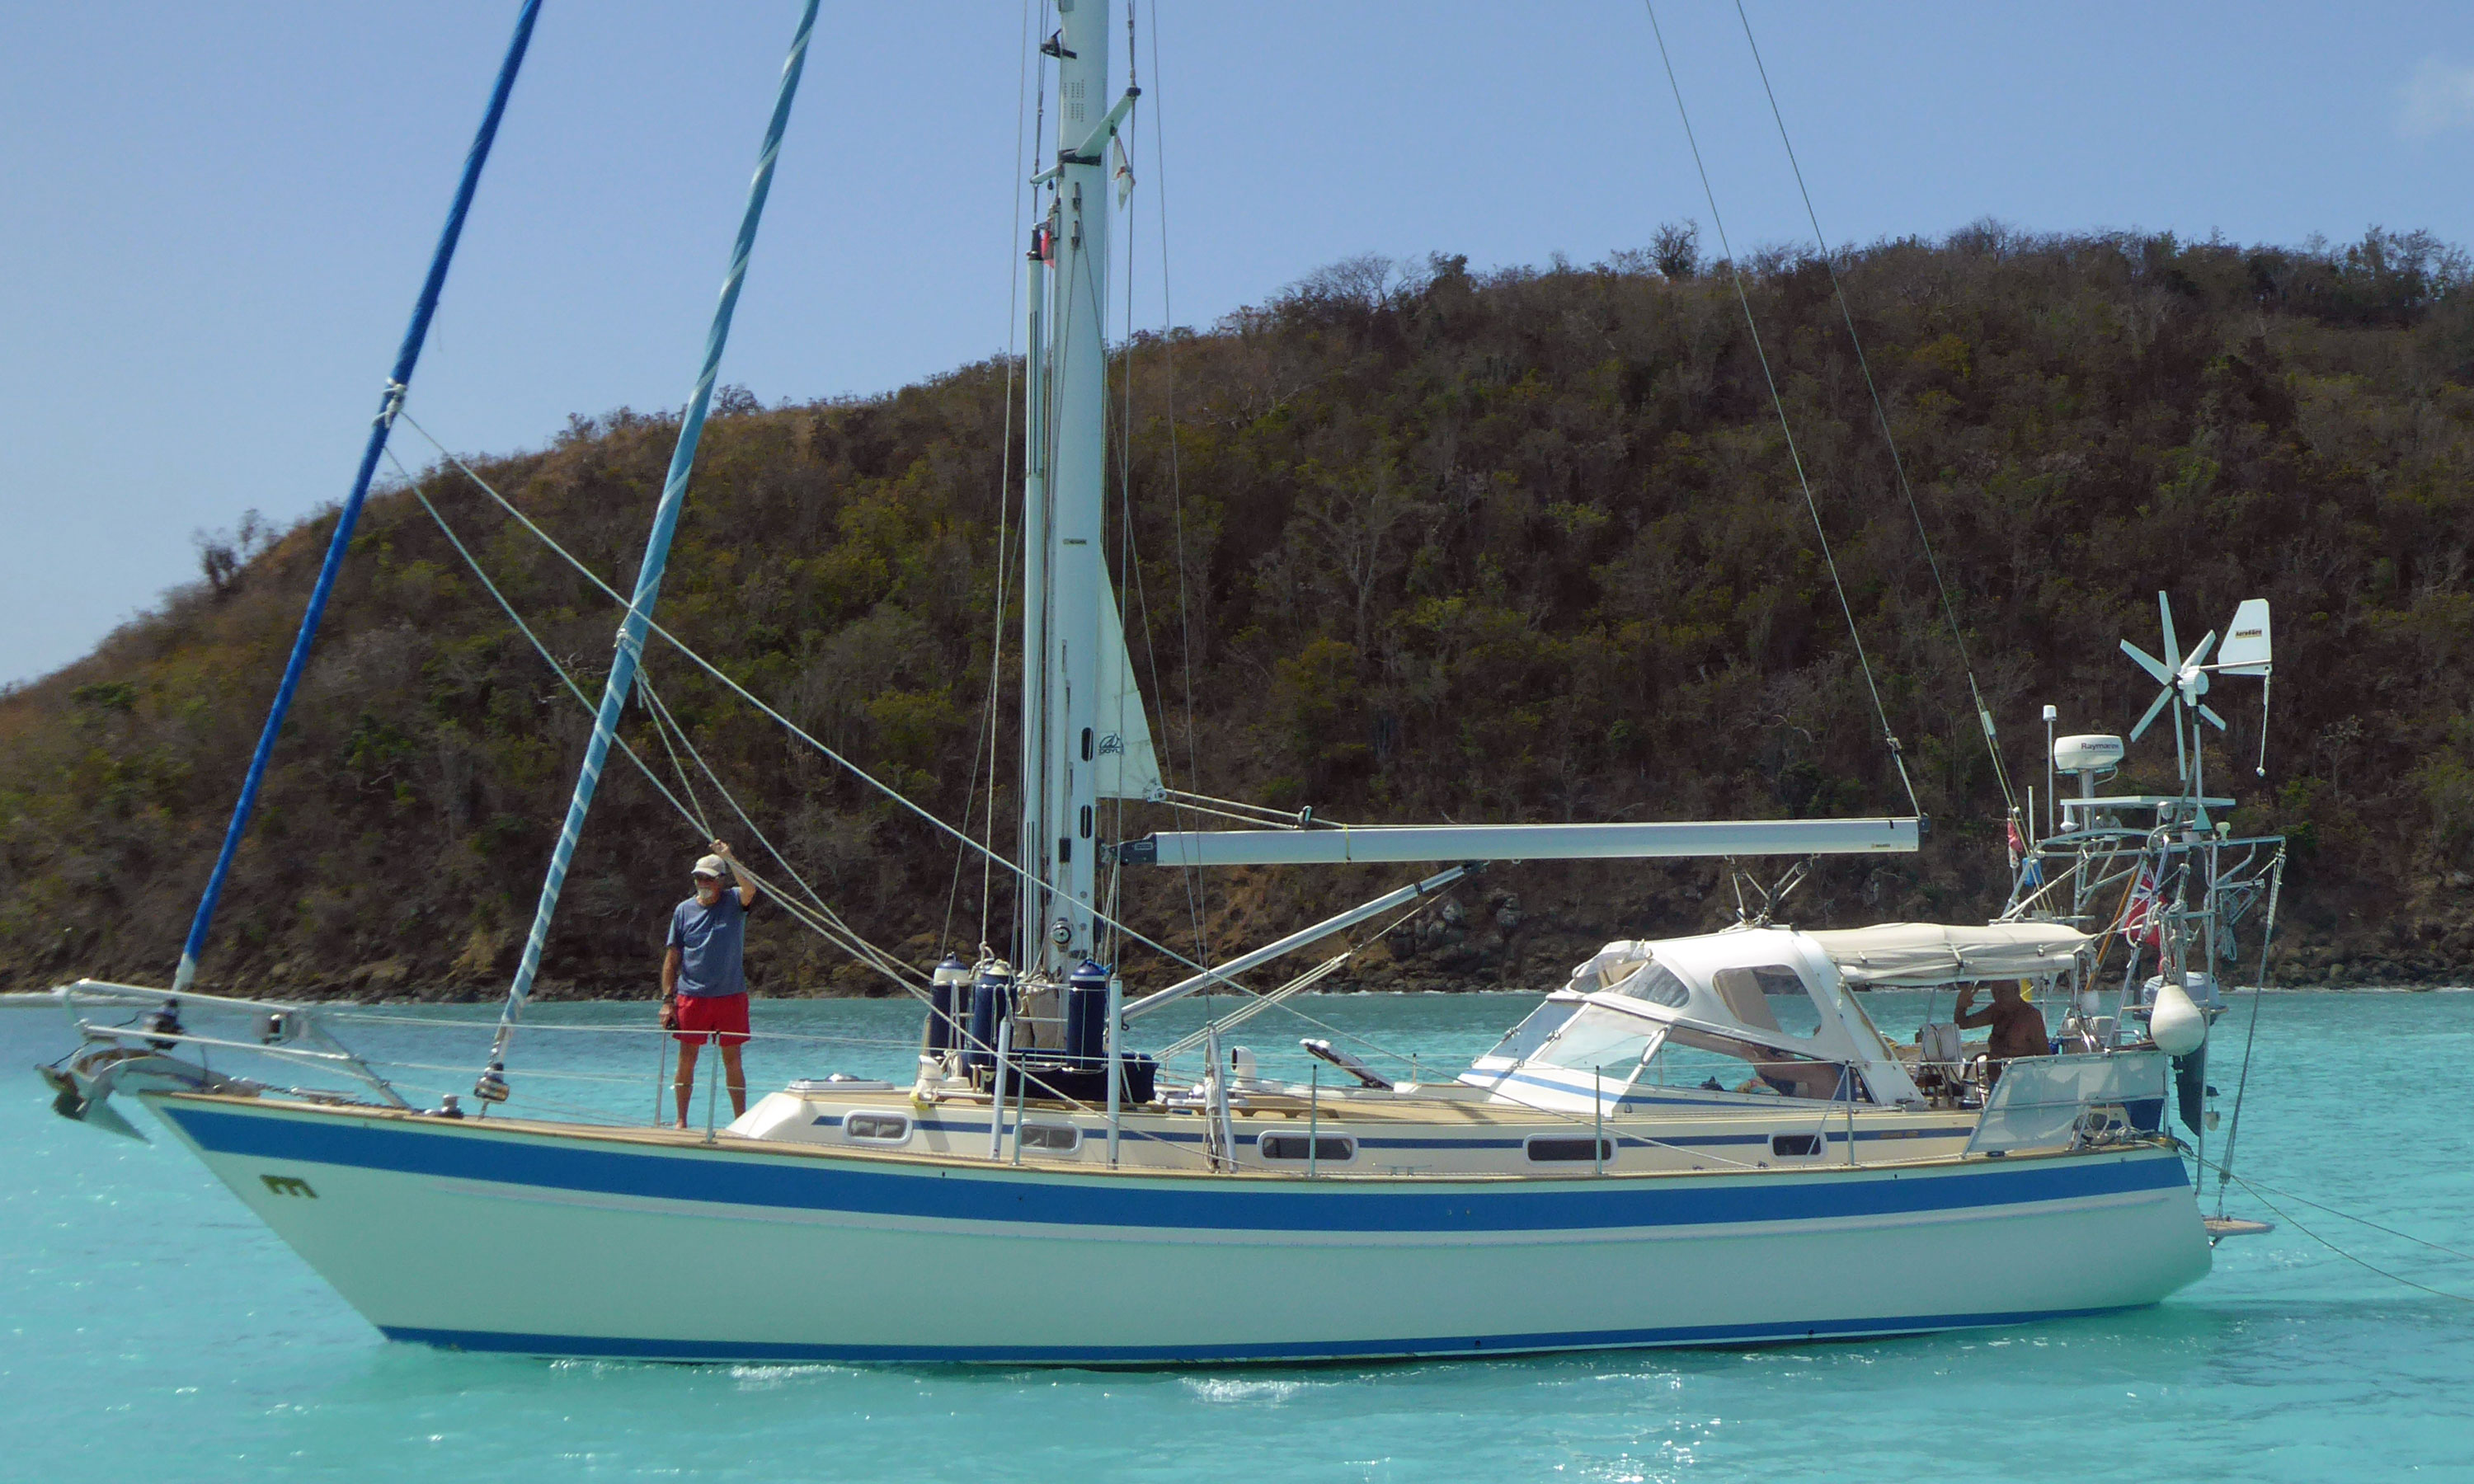 A Malo 42 cutter-rigged sailboat